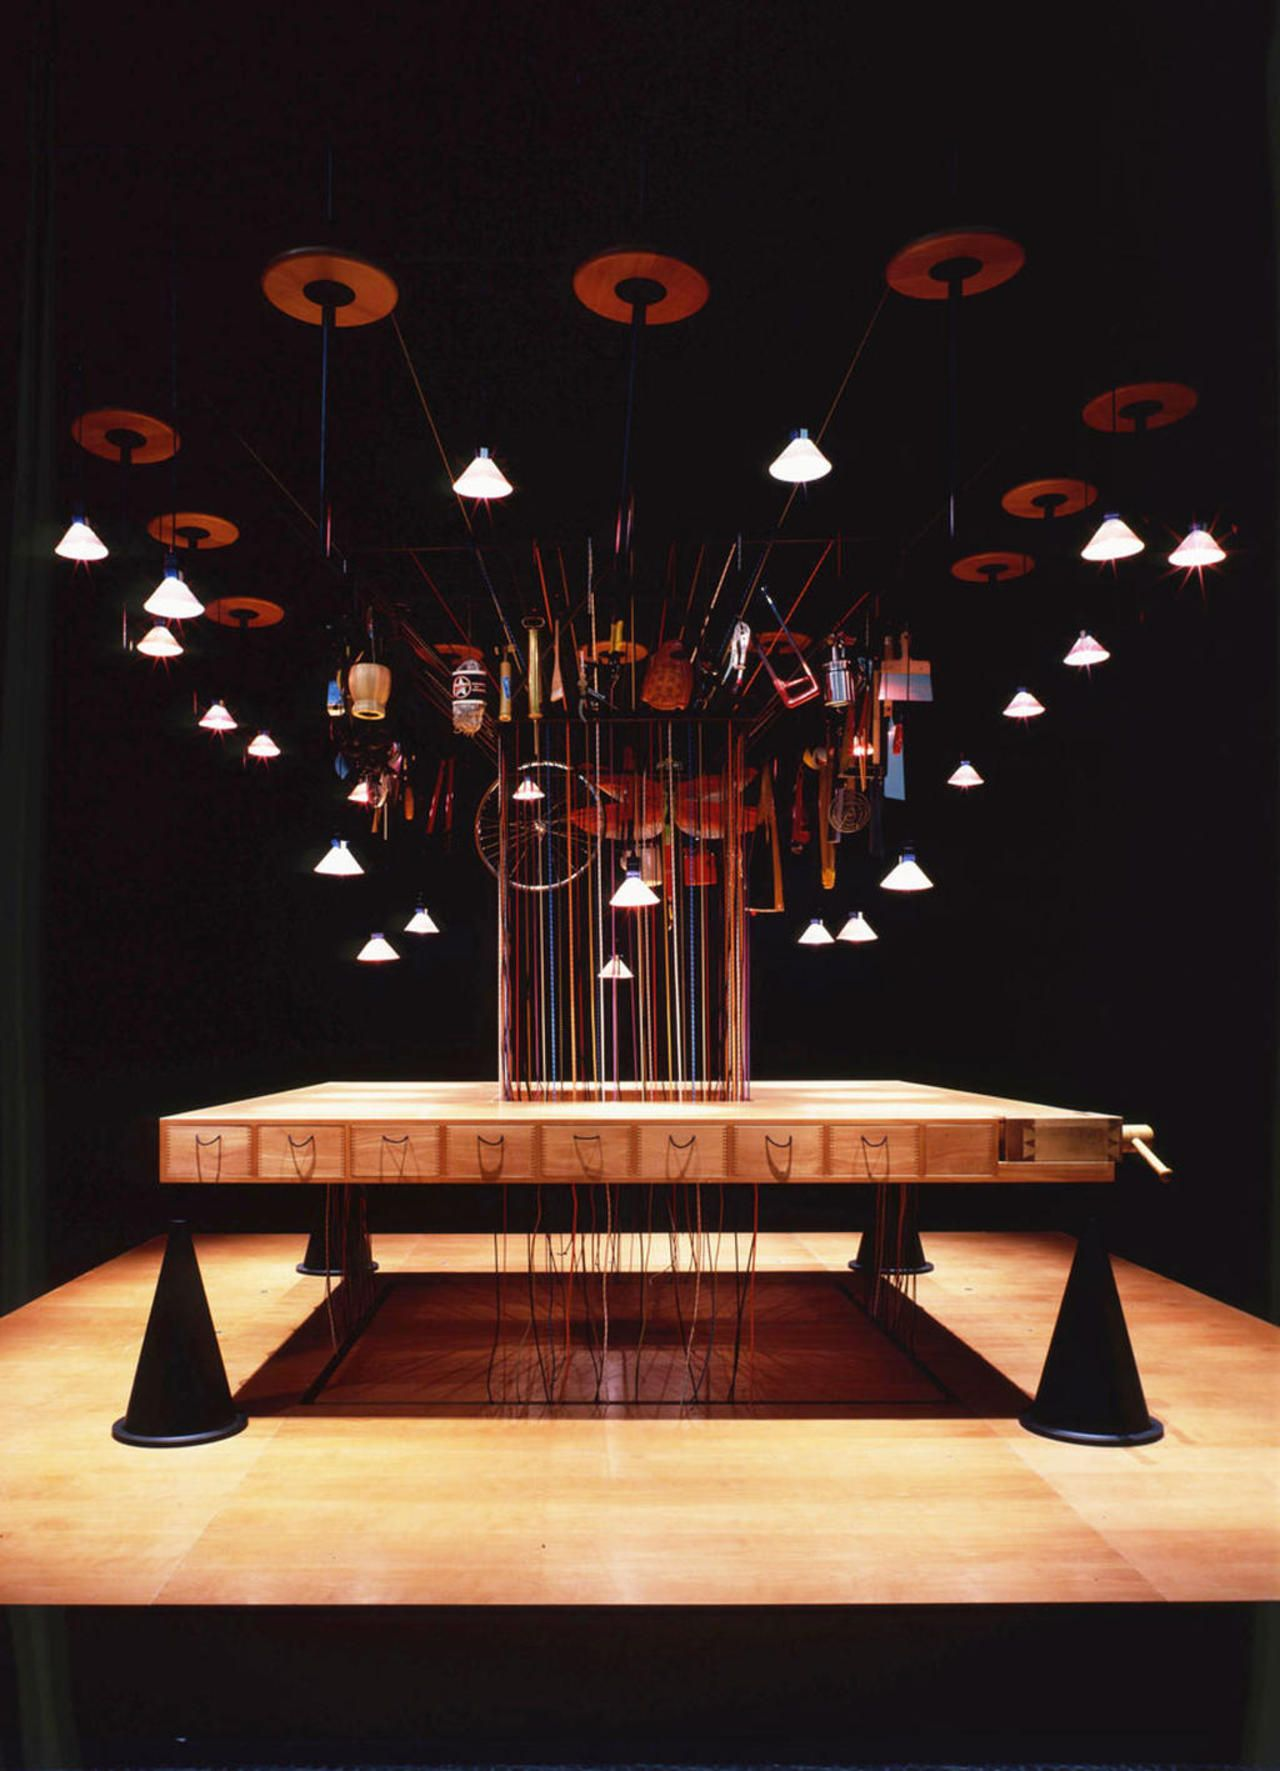 Rumpus Room Designs: Richard Sapper - Rumpus Room - 1986